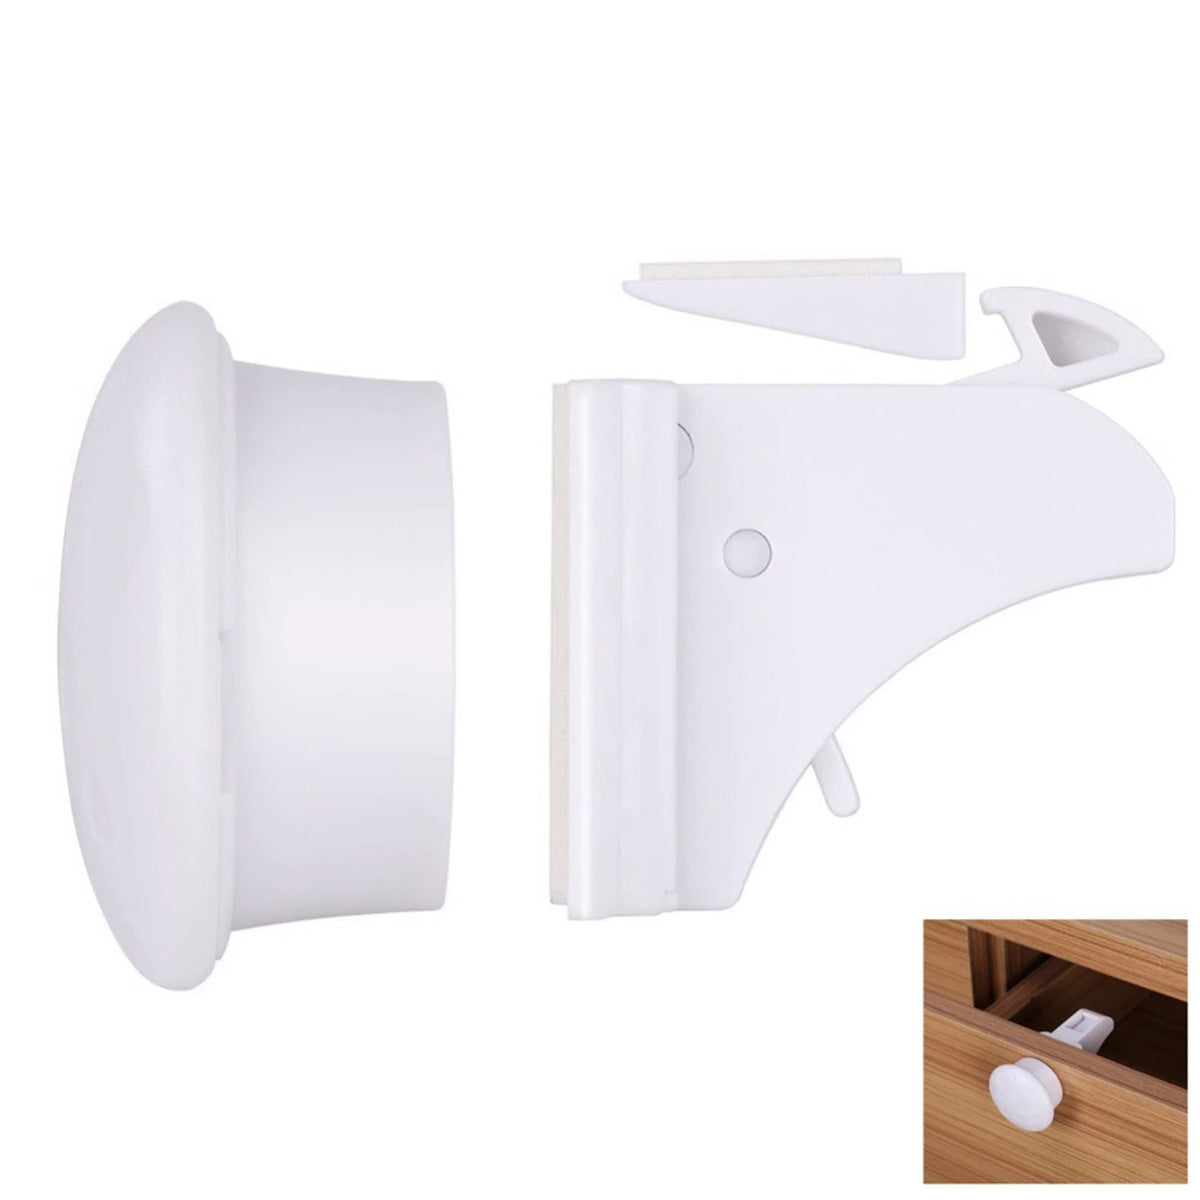 Security Cabinet Magnetic Baby Locks